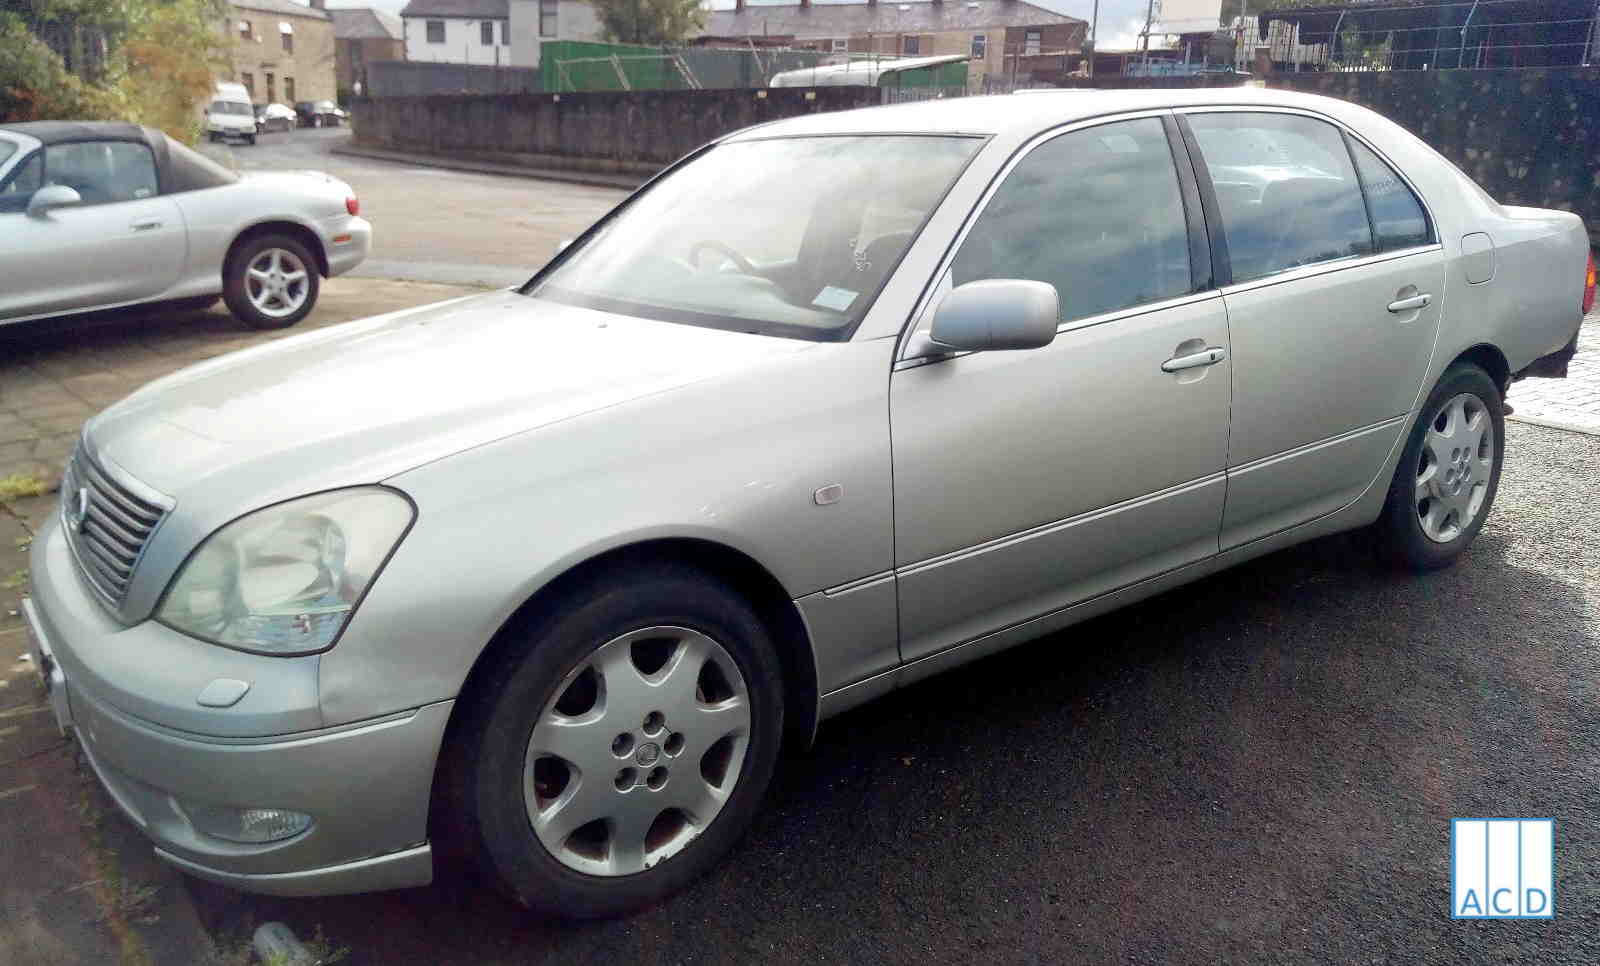 Lexus LS430 4.3L Petrol 5-Speed Automatic 2001 #3223 01